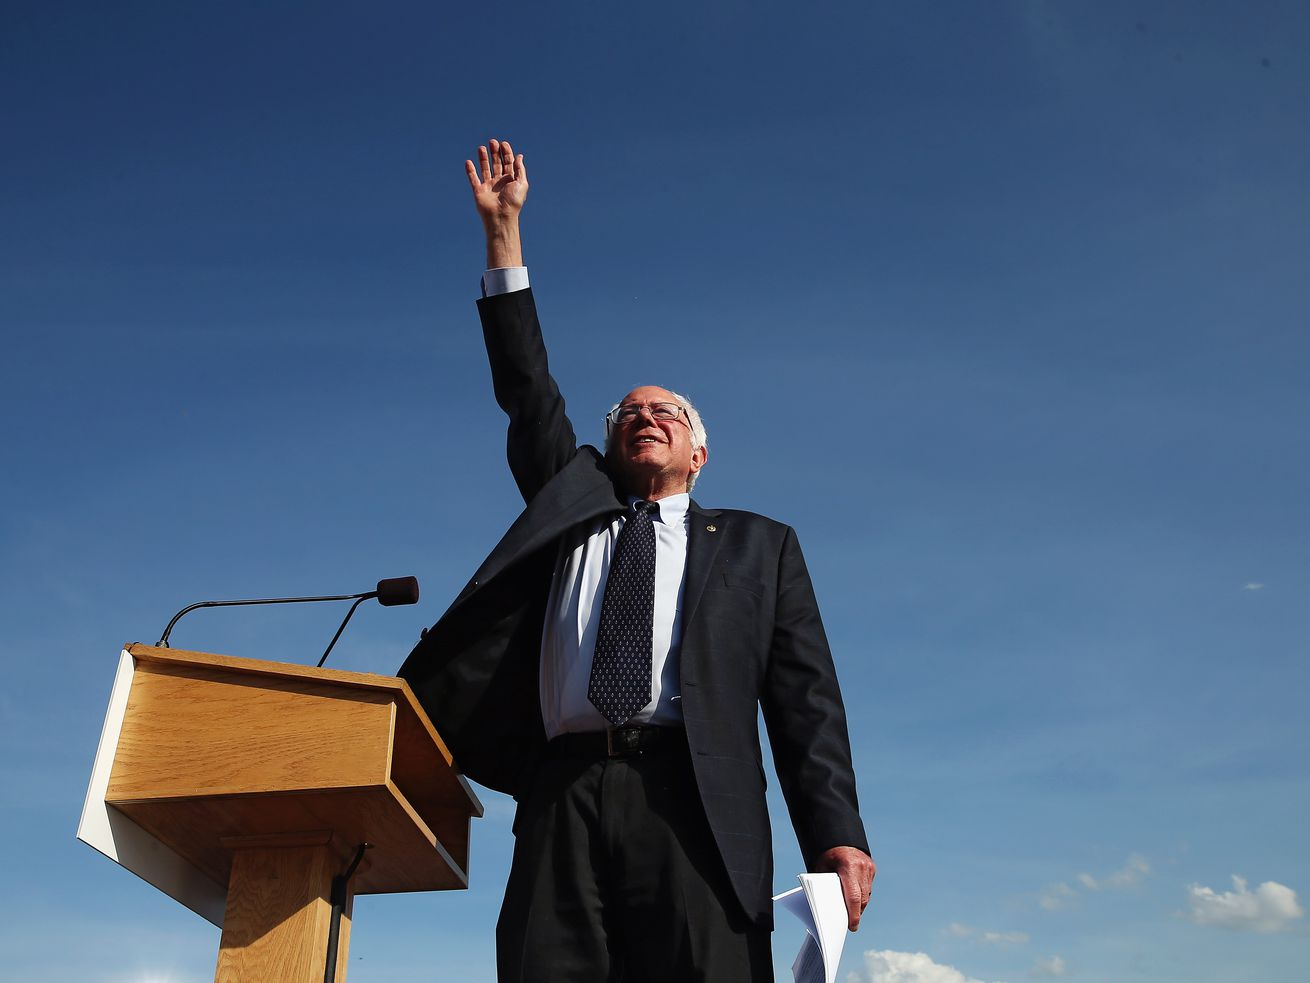 Bernie Sanders launches his first presidential bid in 2015.